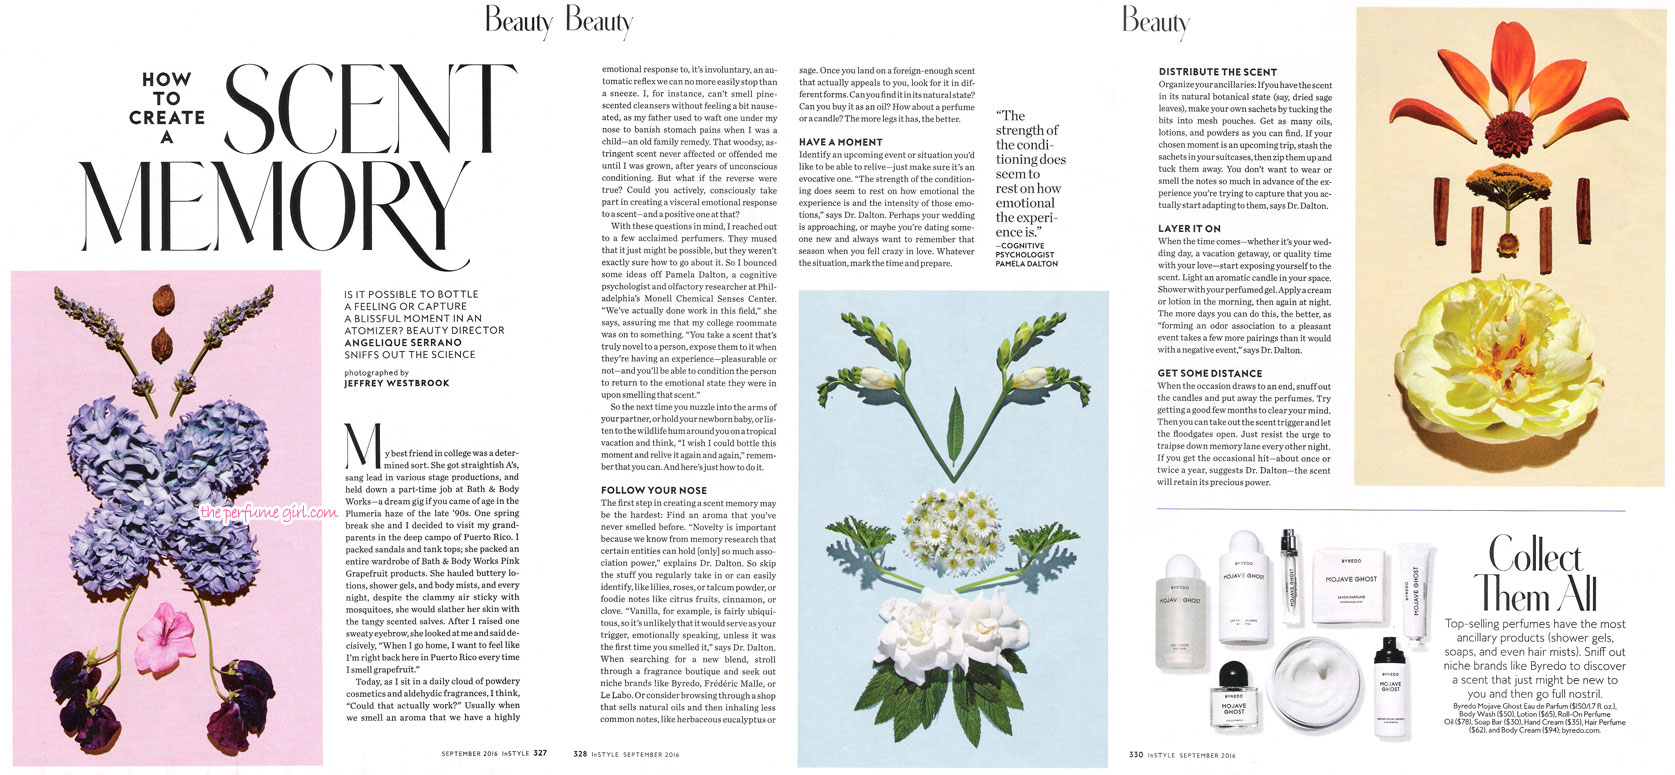 how to create a scent